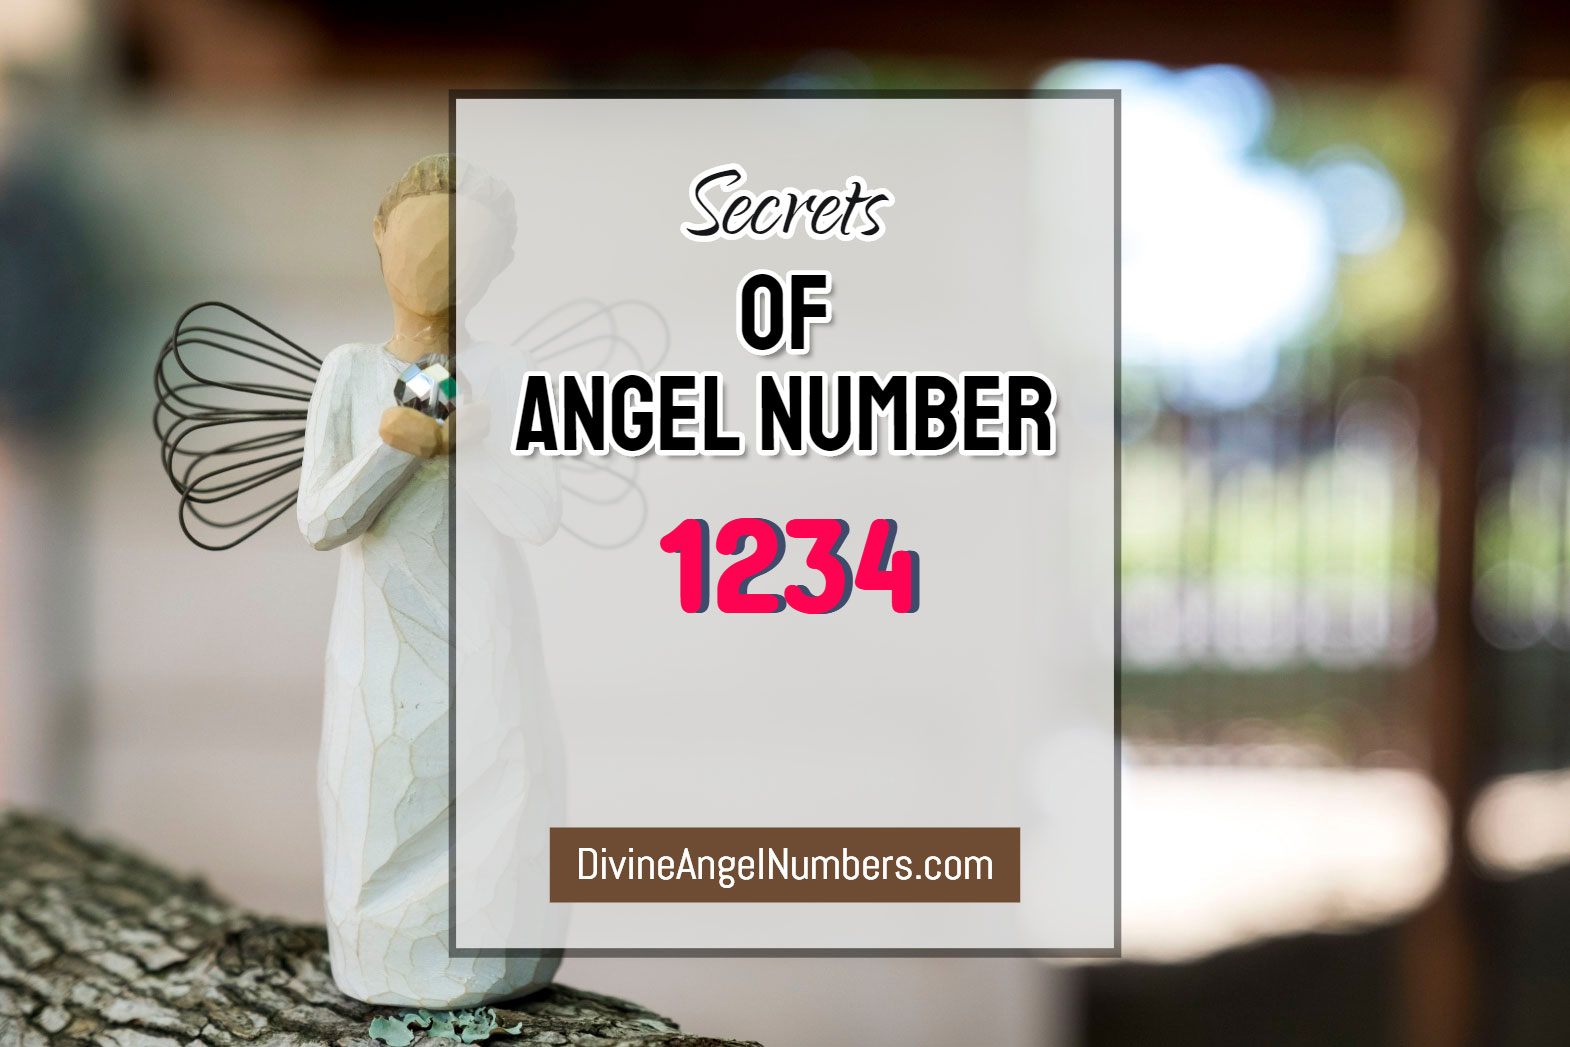 6 Reasons Why You Are Seeing Angel Number 1234 - Meaning Of 1234